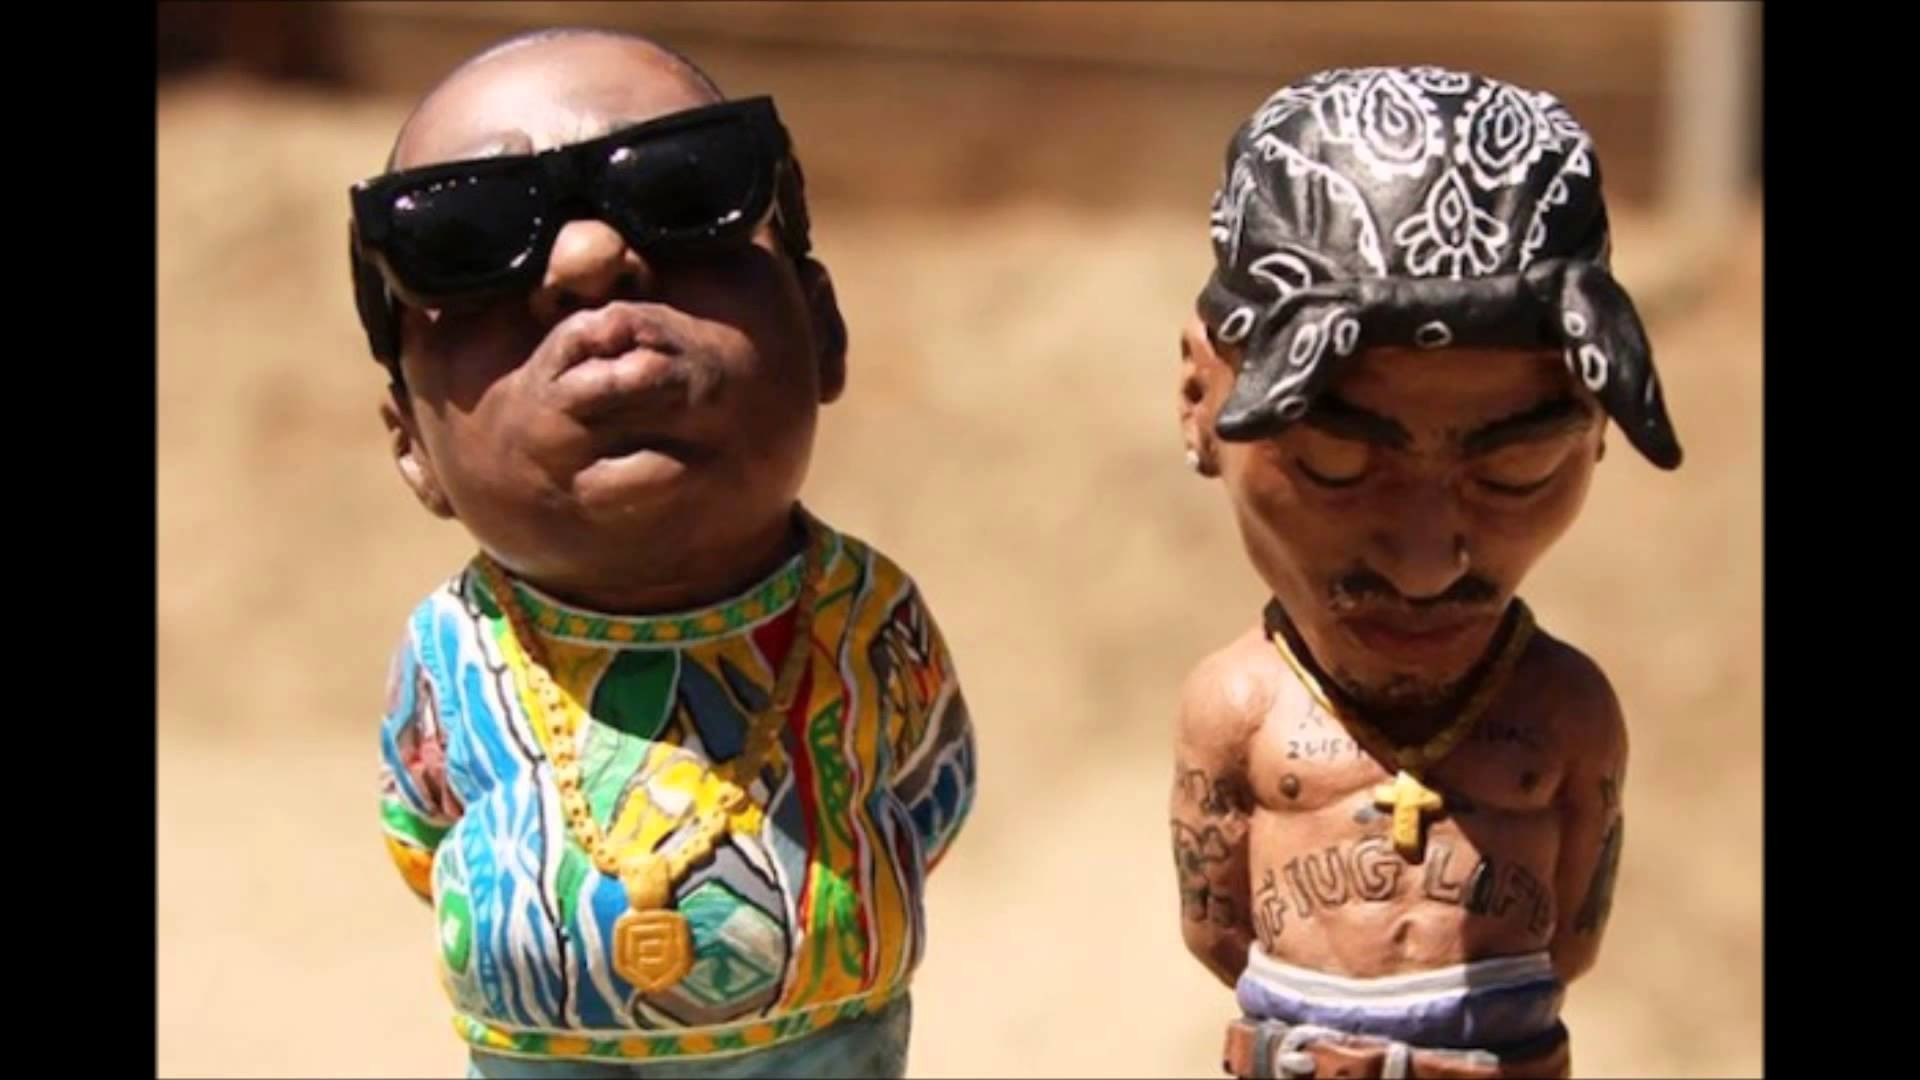 2Pac & Notorious B.I.G. freestyle together new mix 2016